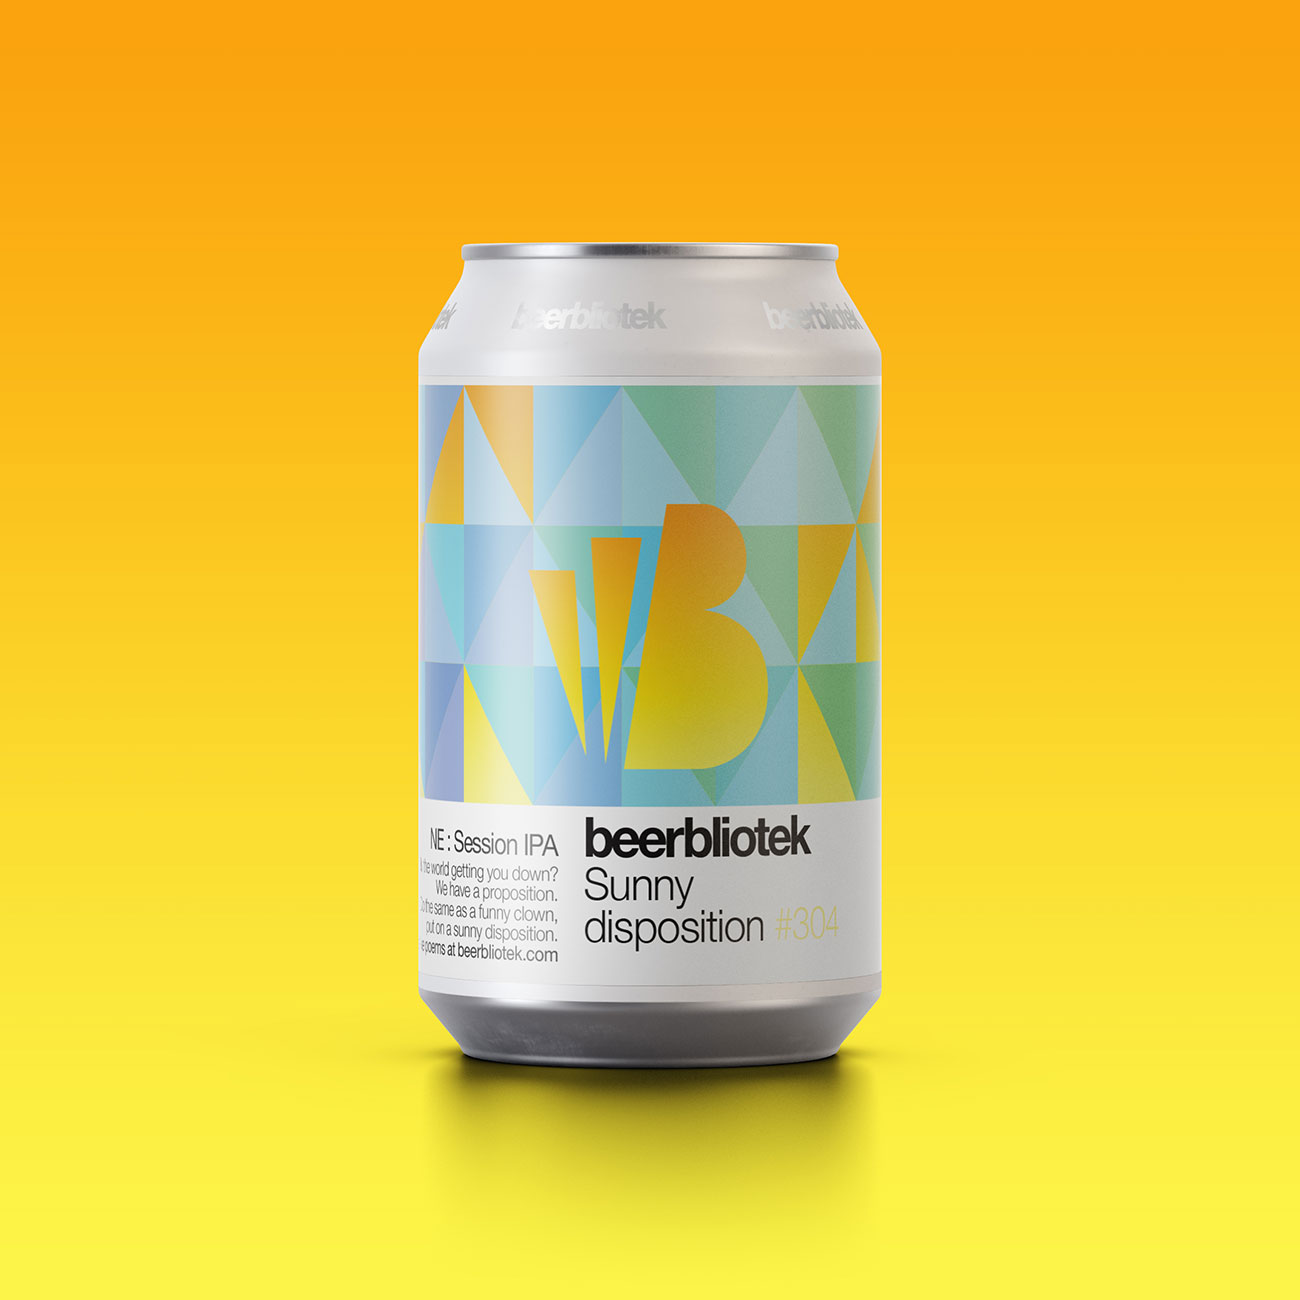 Beerbliotek - Sunny Disposition Session IPA 5.2% 330 can